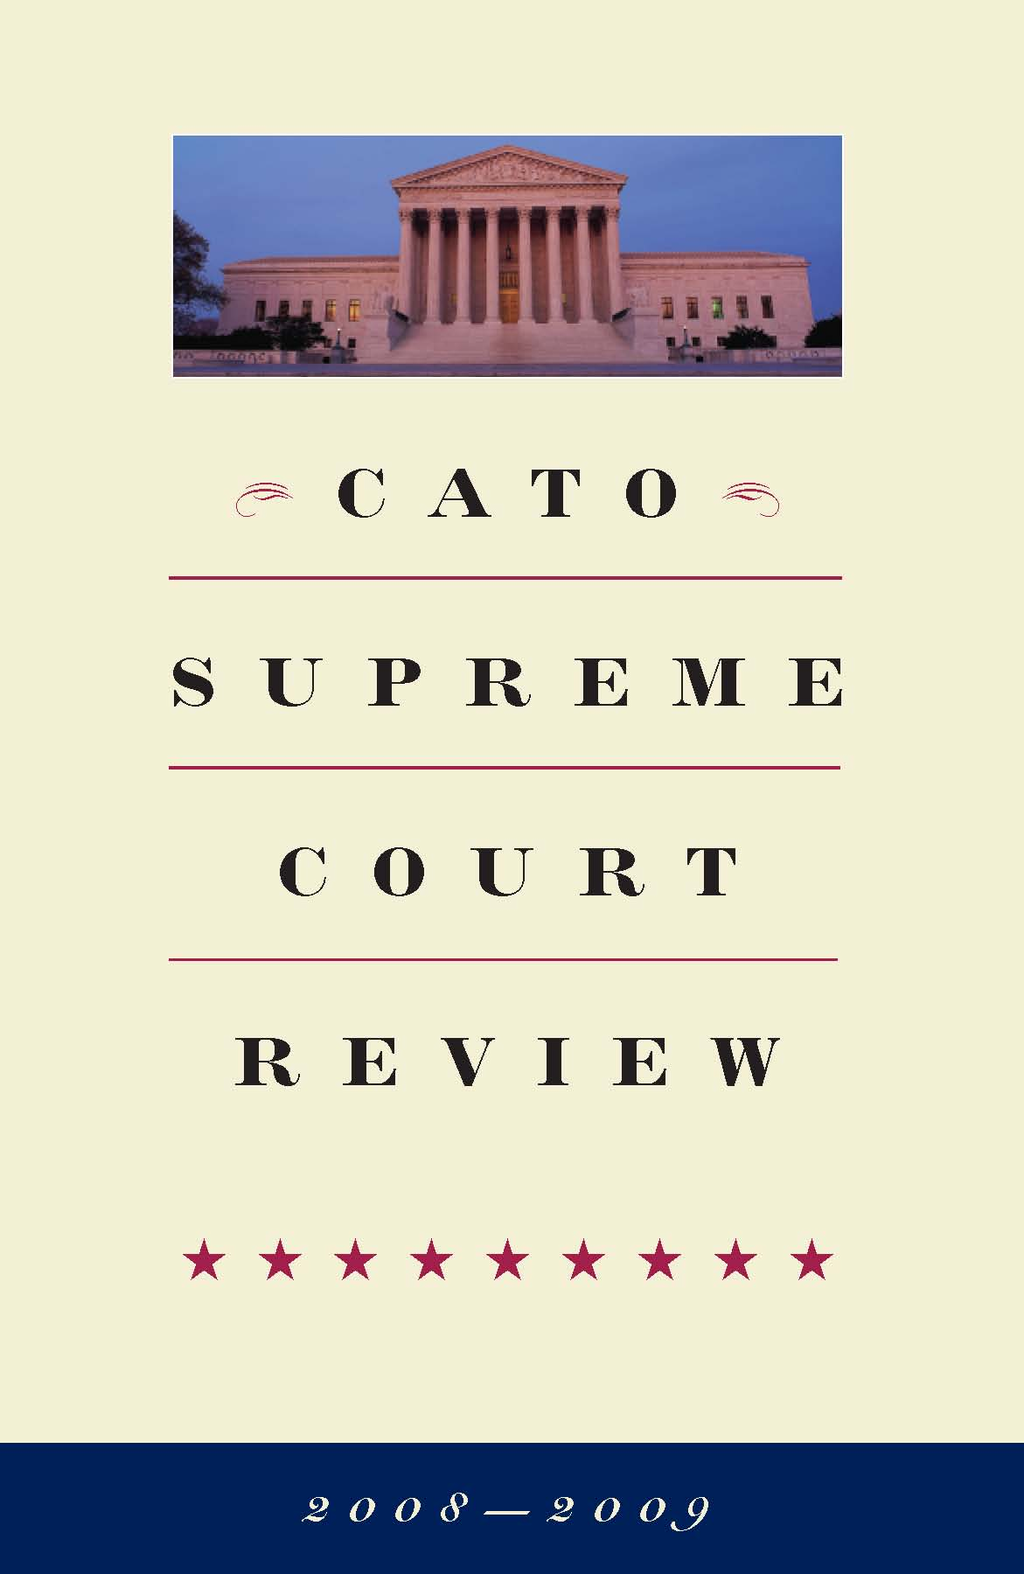 Cato Supreme Court Review, 2008-2009